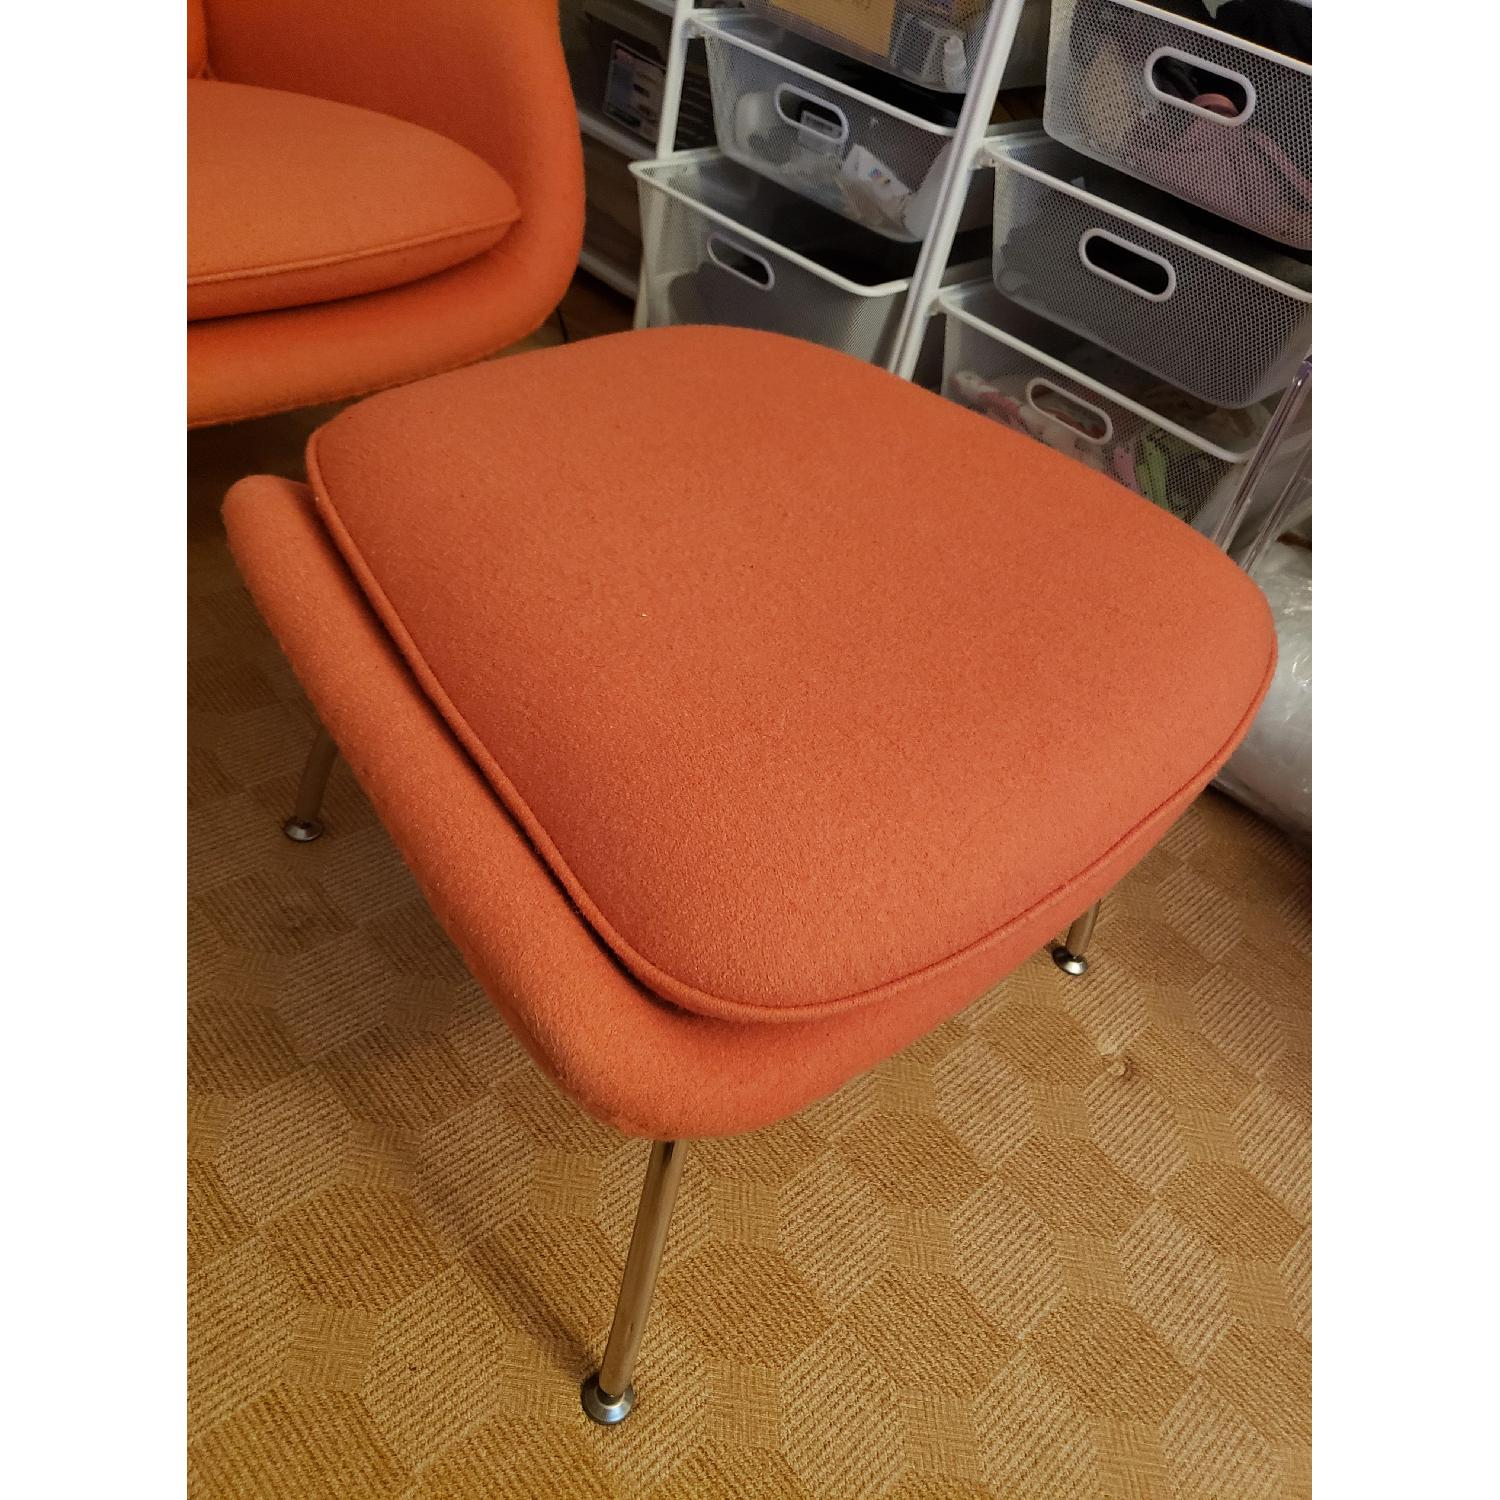 Rove Concepts Womb Chair & Ottoman - image-3